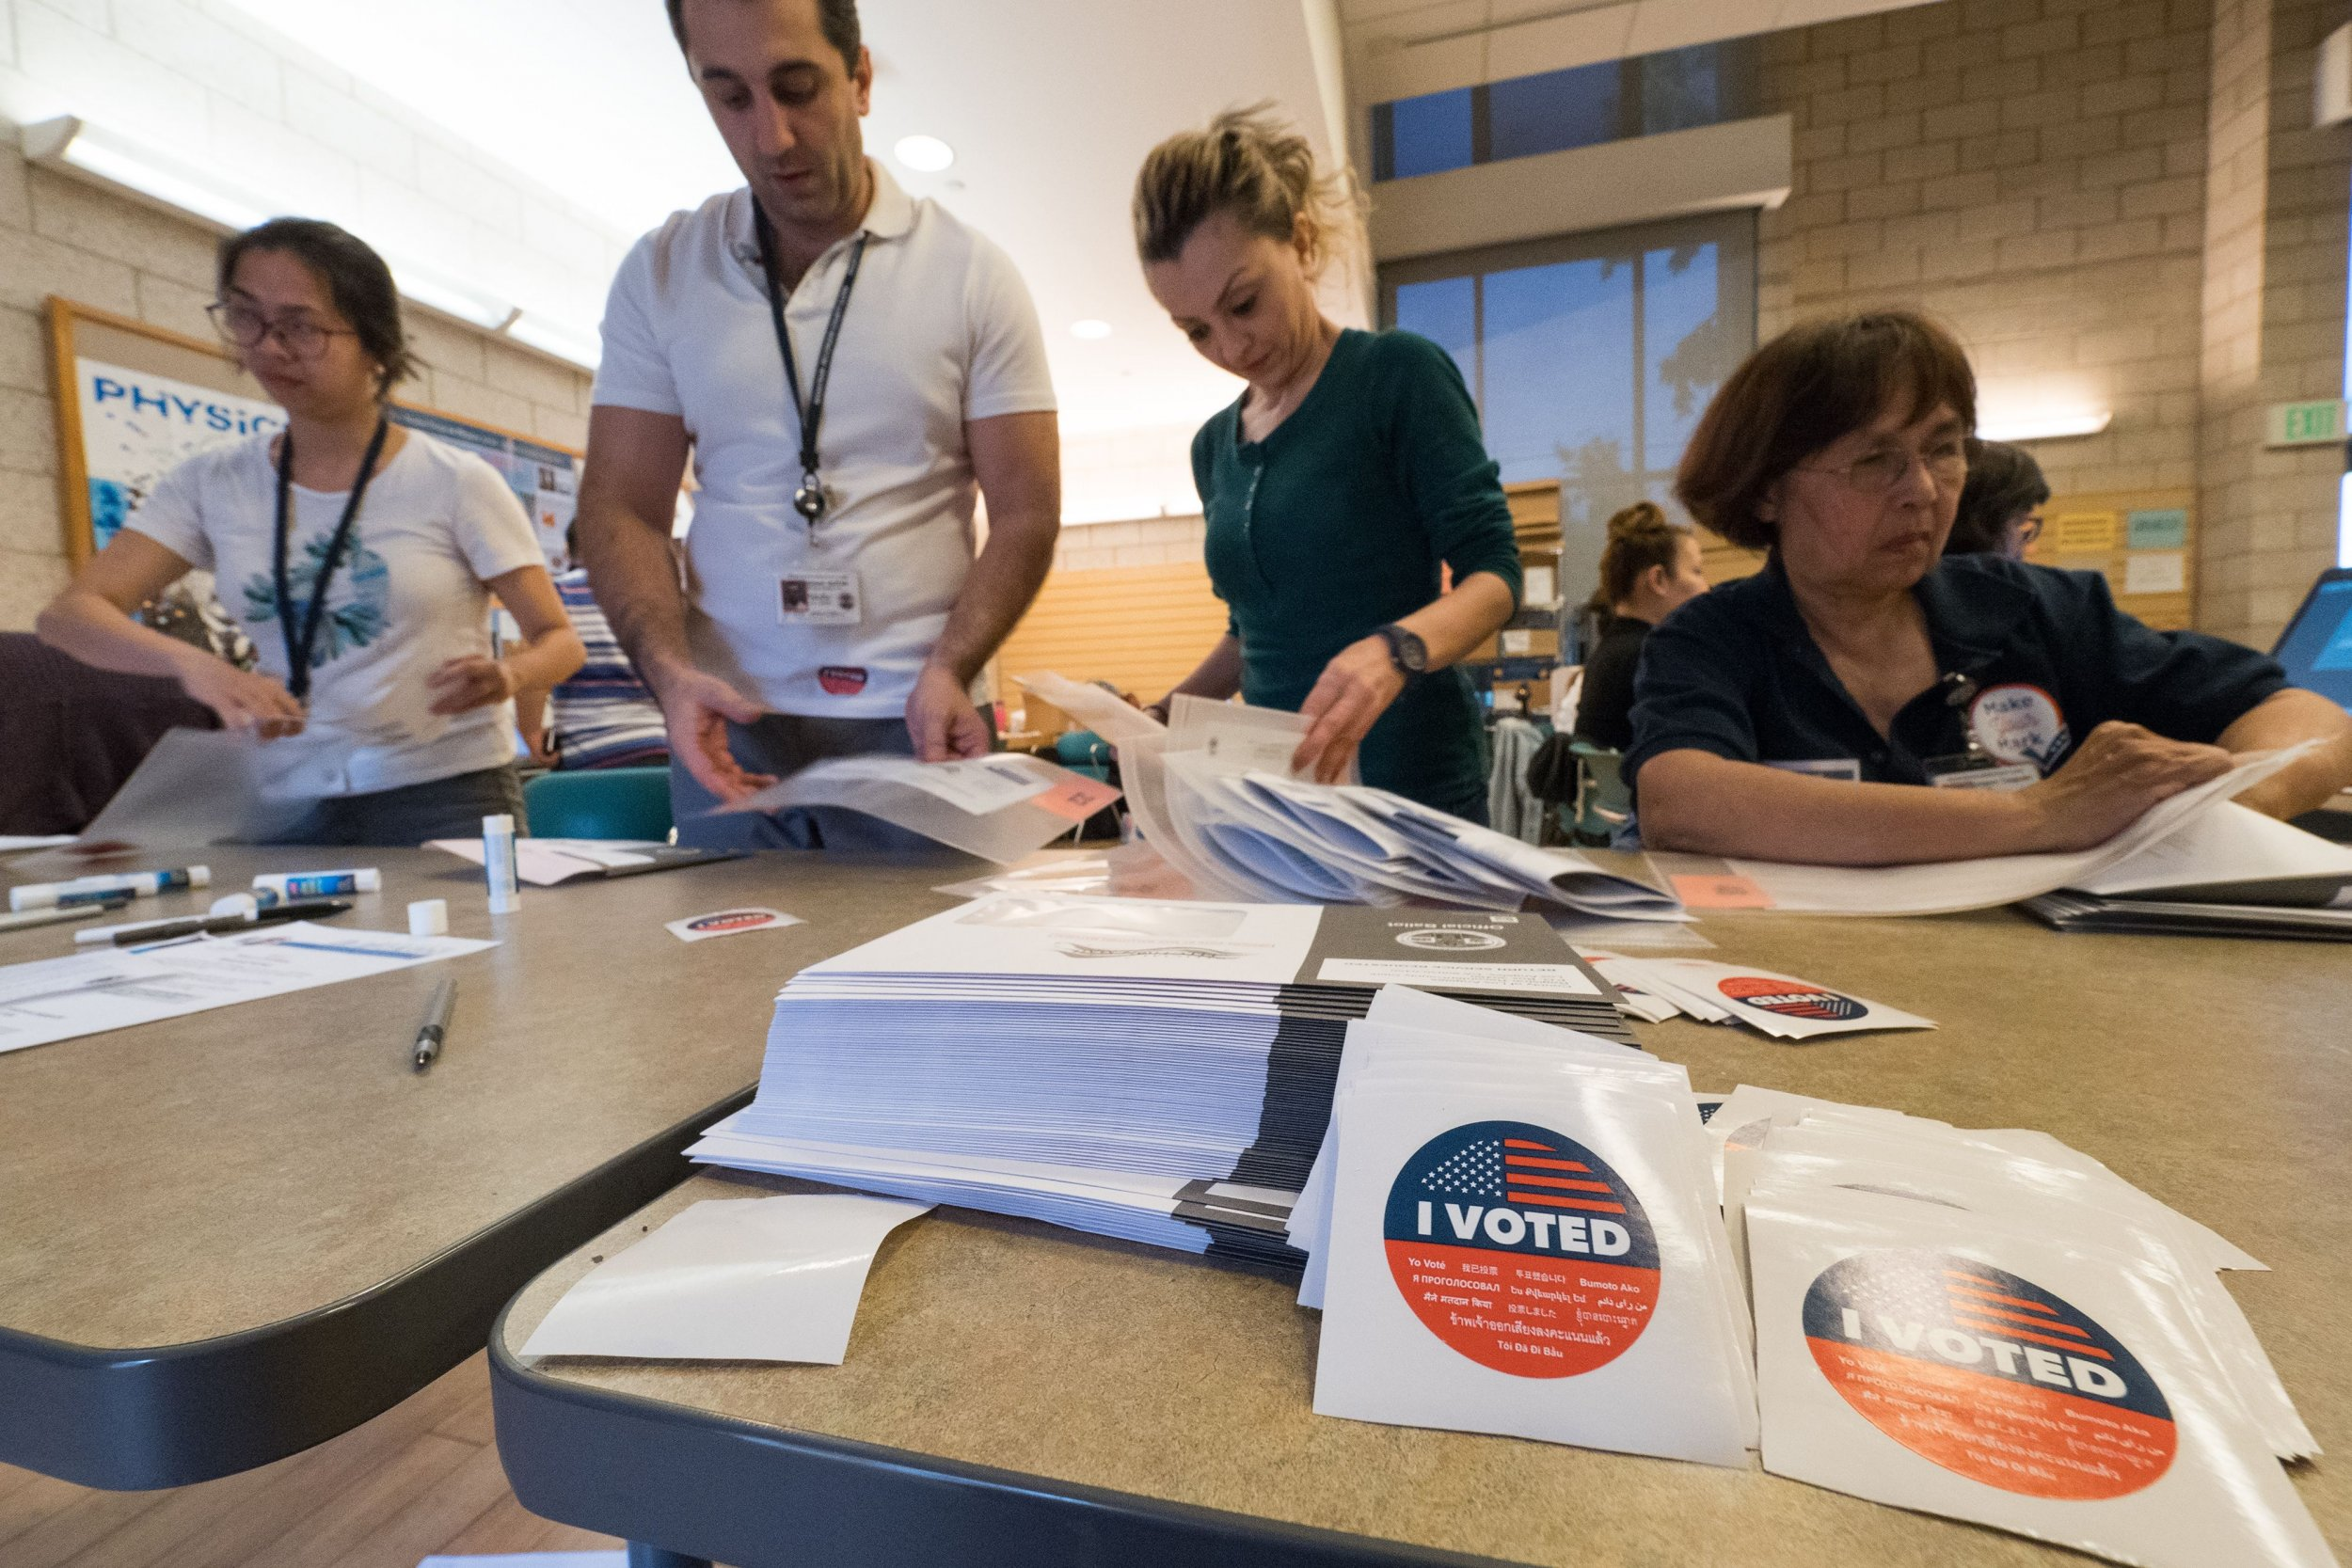 where to vote, ballot, photo id, midterm elections 2018